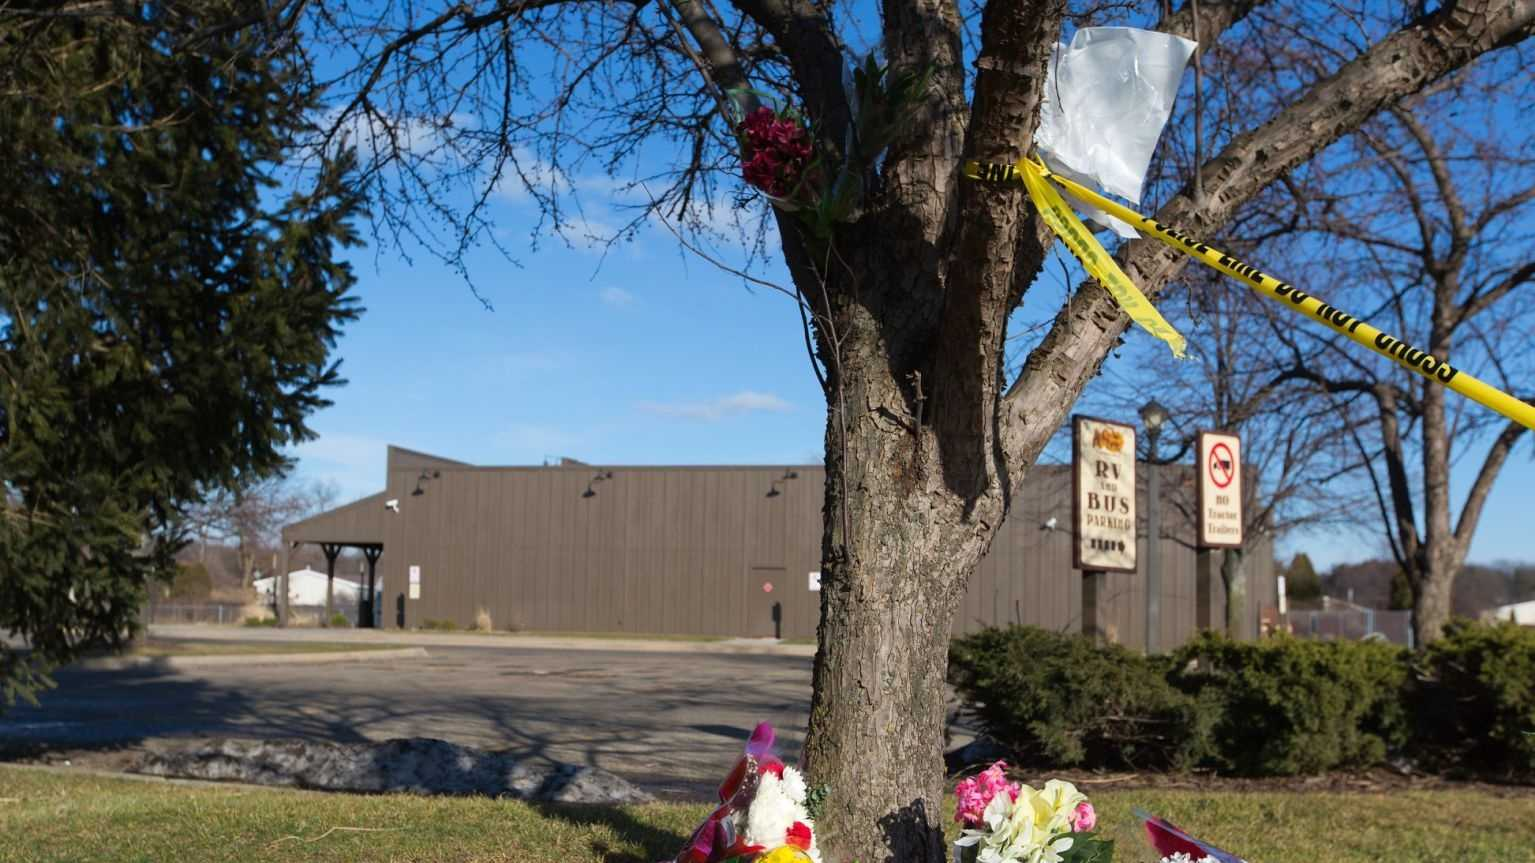 Flowers lie near a makes shift memorial outside a Cracker Barrel, Sunday, Feb. 21, 2016, in Kalamazoo, Mich. According to police a man drove around Kalamazoo fatally shooting several people at multiple locations on Saturday, including the parking lot of the restaurant. Authorities identified the shooter as Jason Dalton.